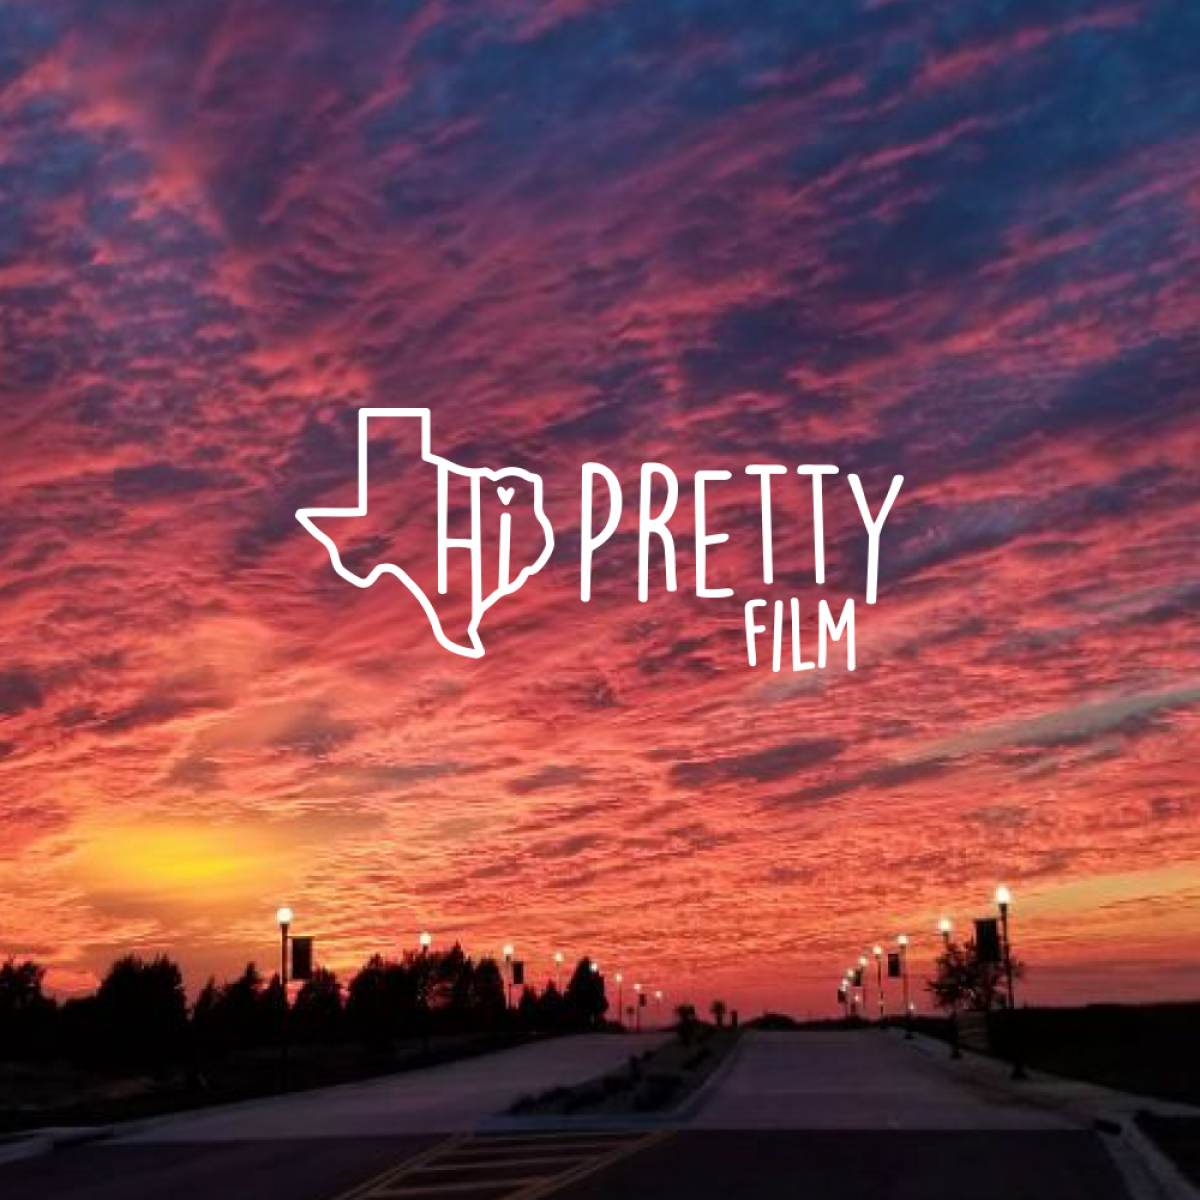 Hi Pretty Film